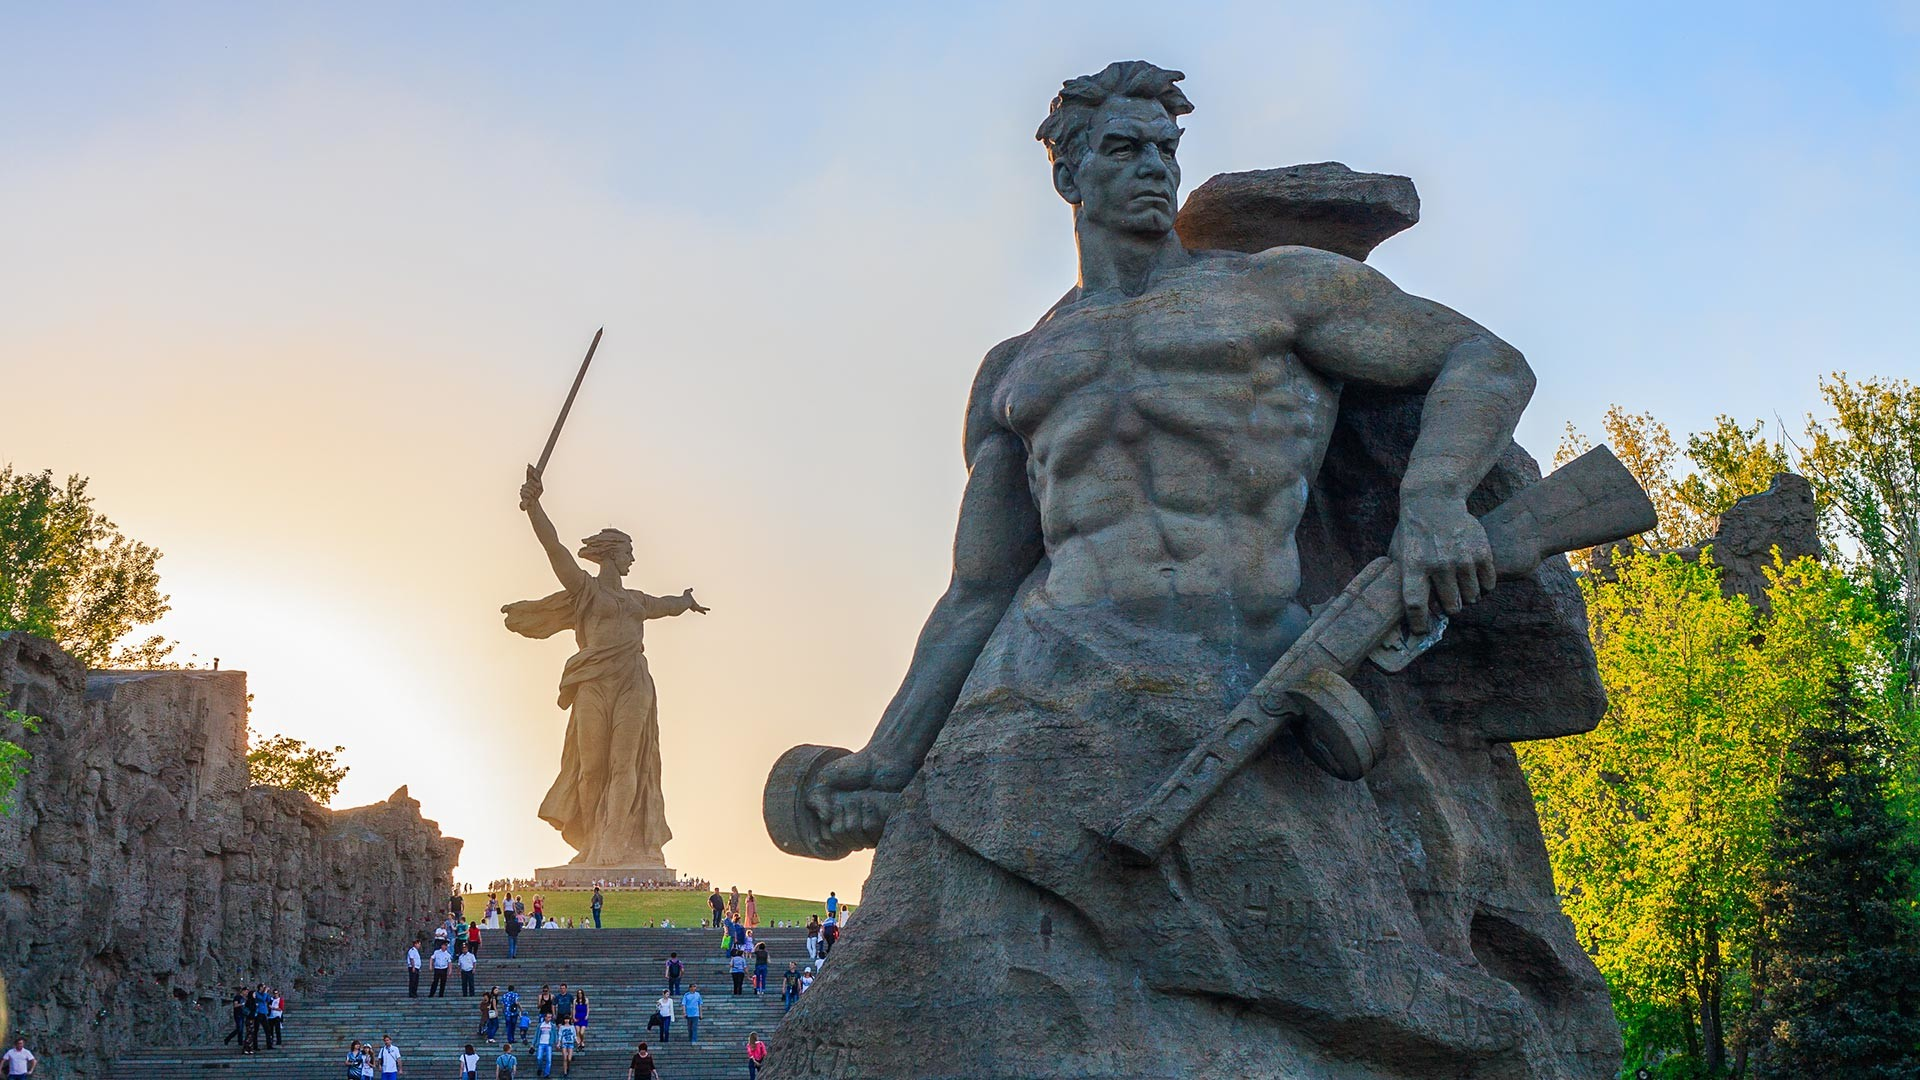 Monument-ensemble 'Heroes of the Battle of Stalingrad' in Volgograd.